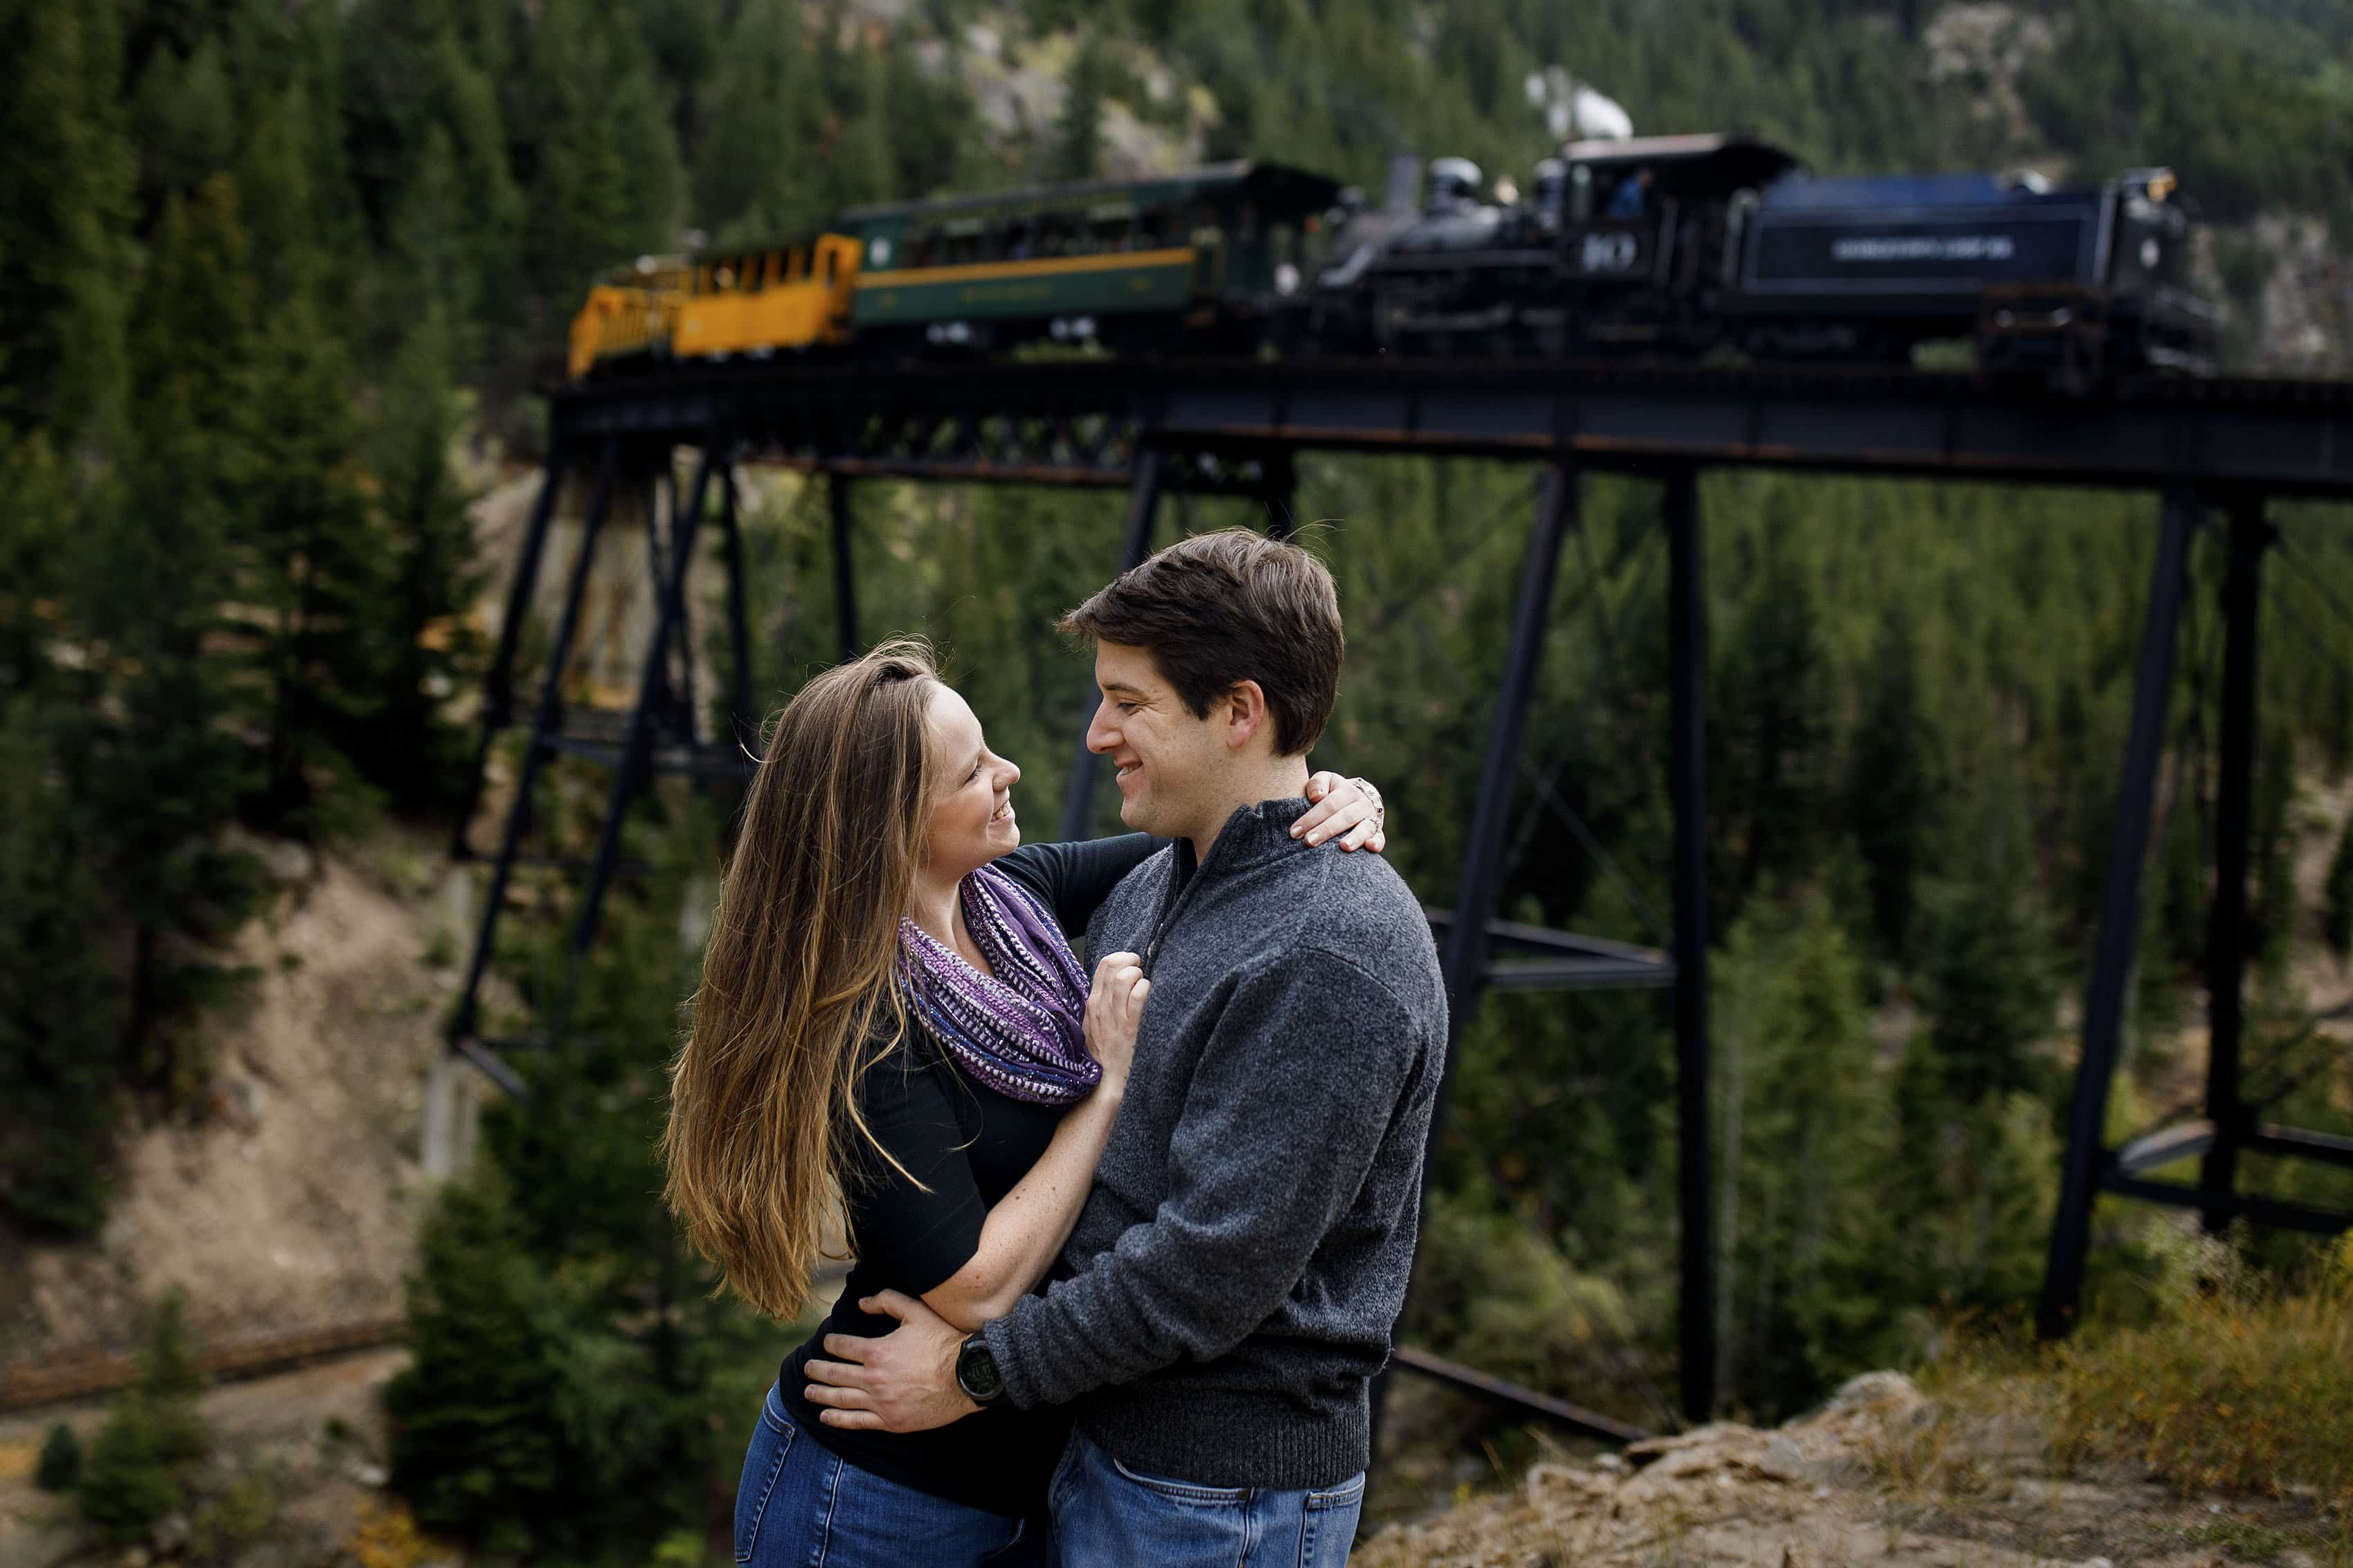 Chris and Madeline embrace as the Georgetown Loop Railroad passes by during their engagement session